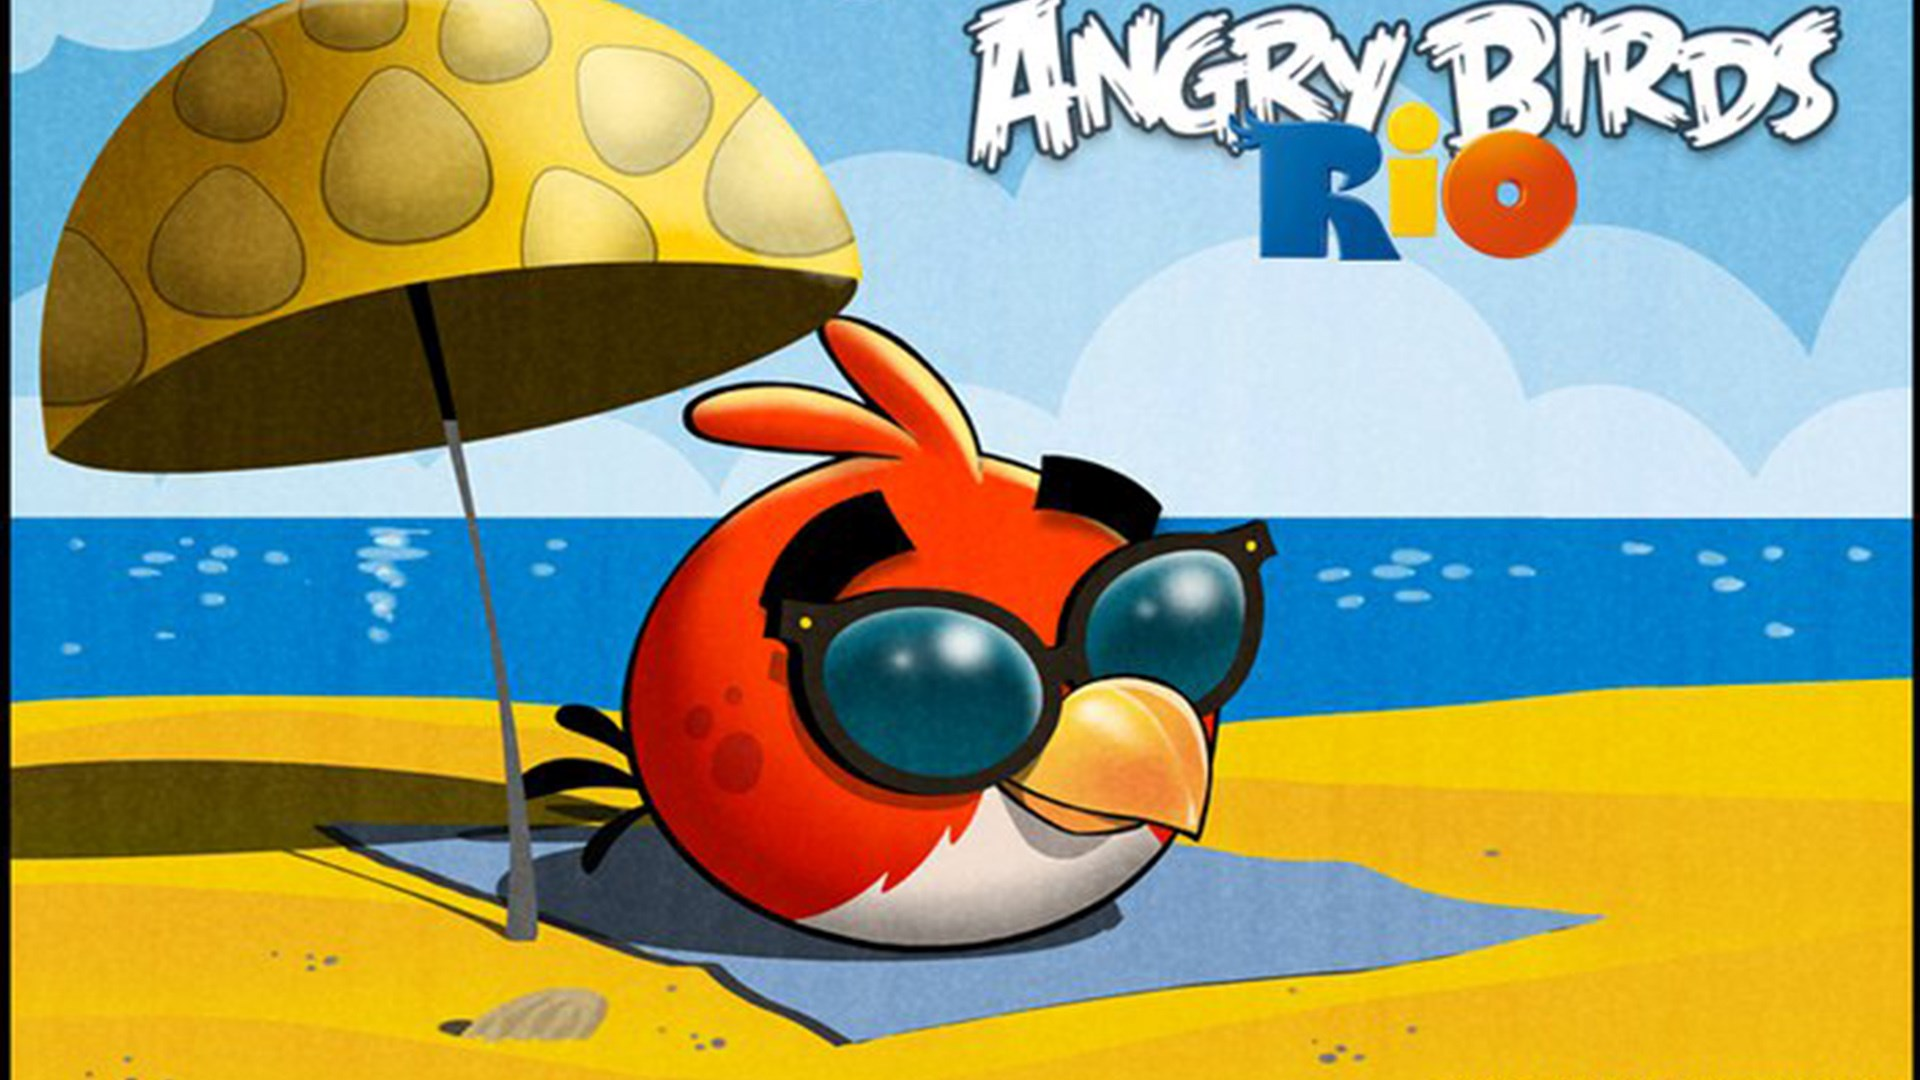 angry-birds-rio-picture-to-download-1920x1080-kB-wallpaper-wp3402393